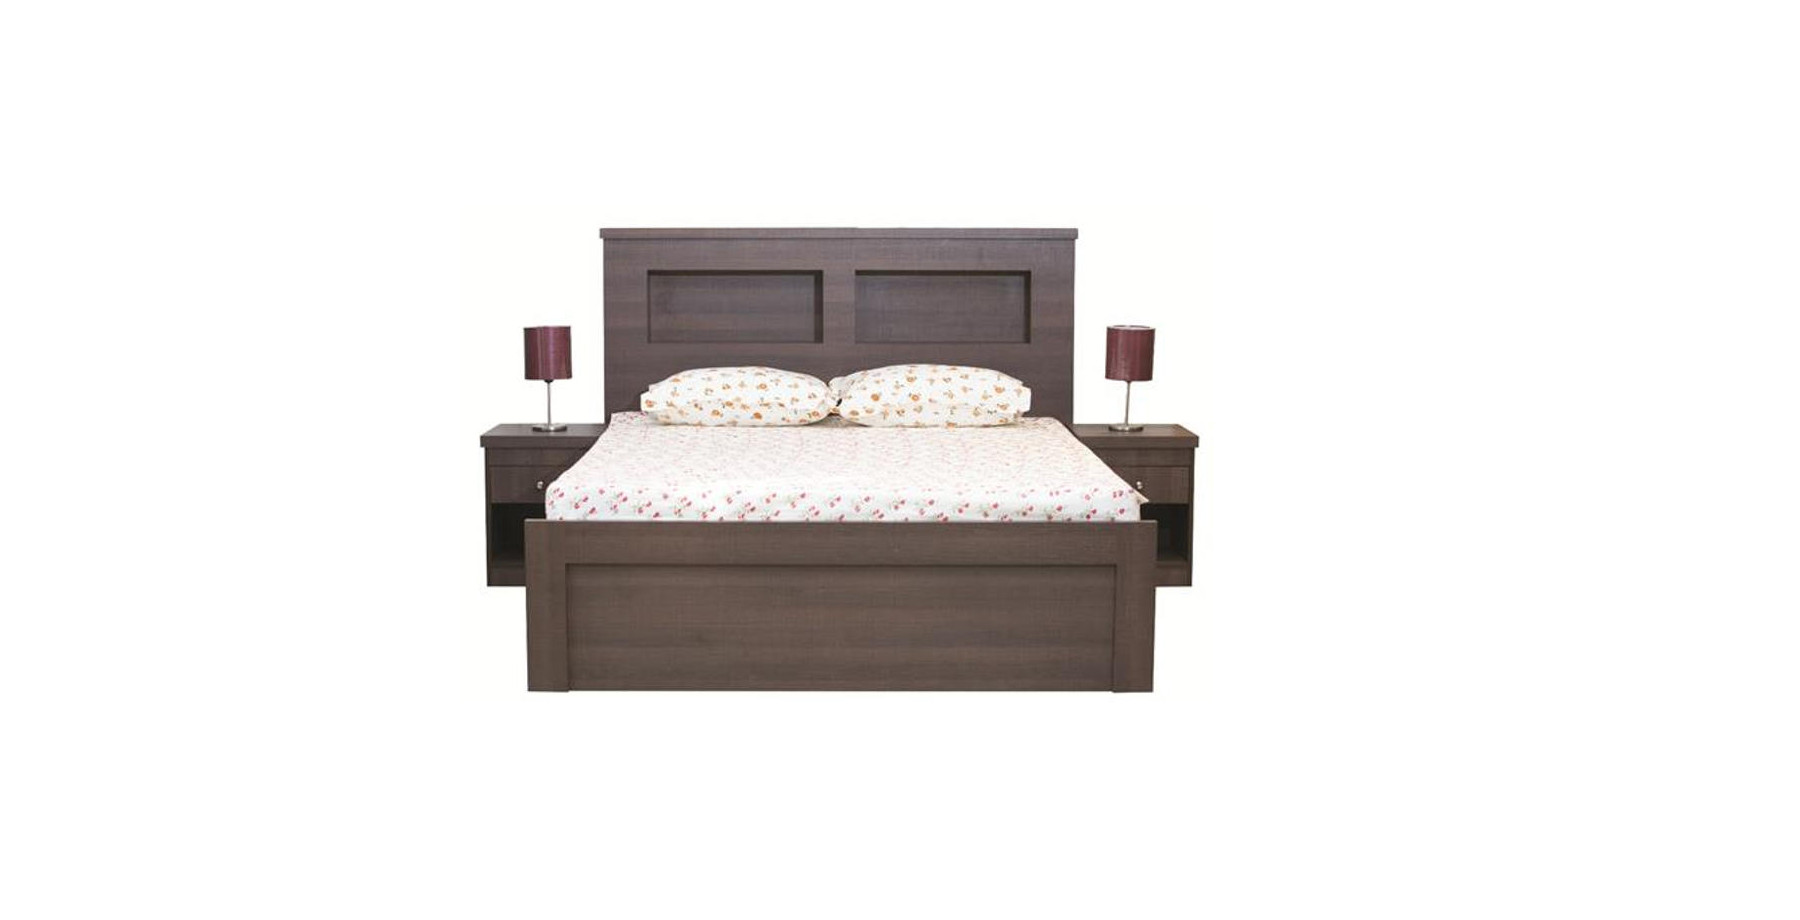 Cots and Mattresses in Bedroom Furniture at Indroyal